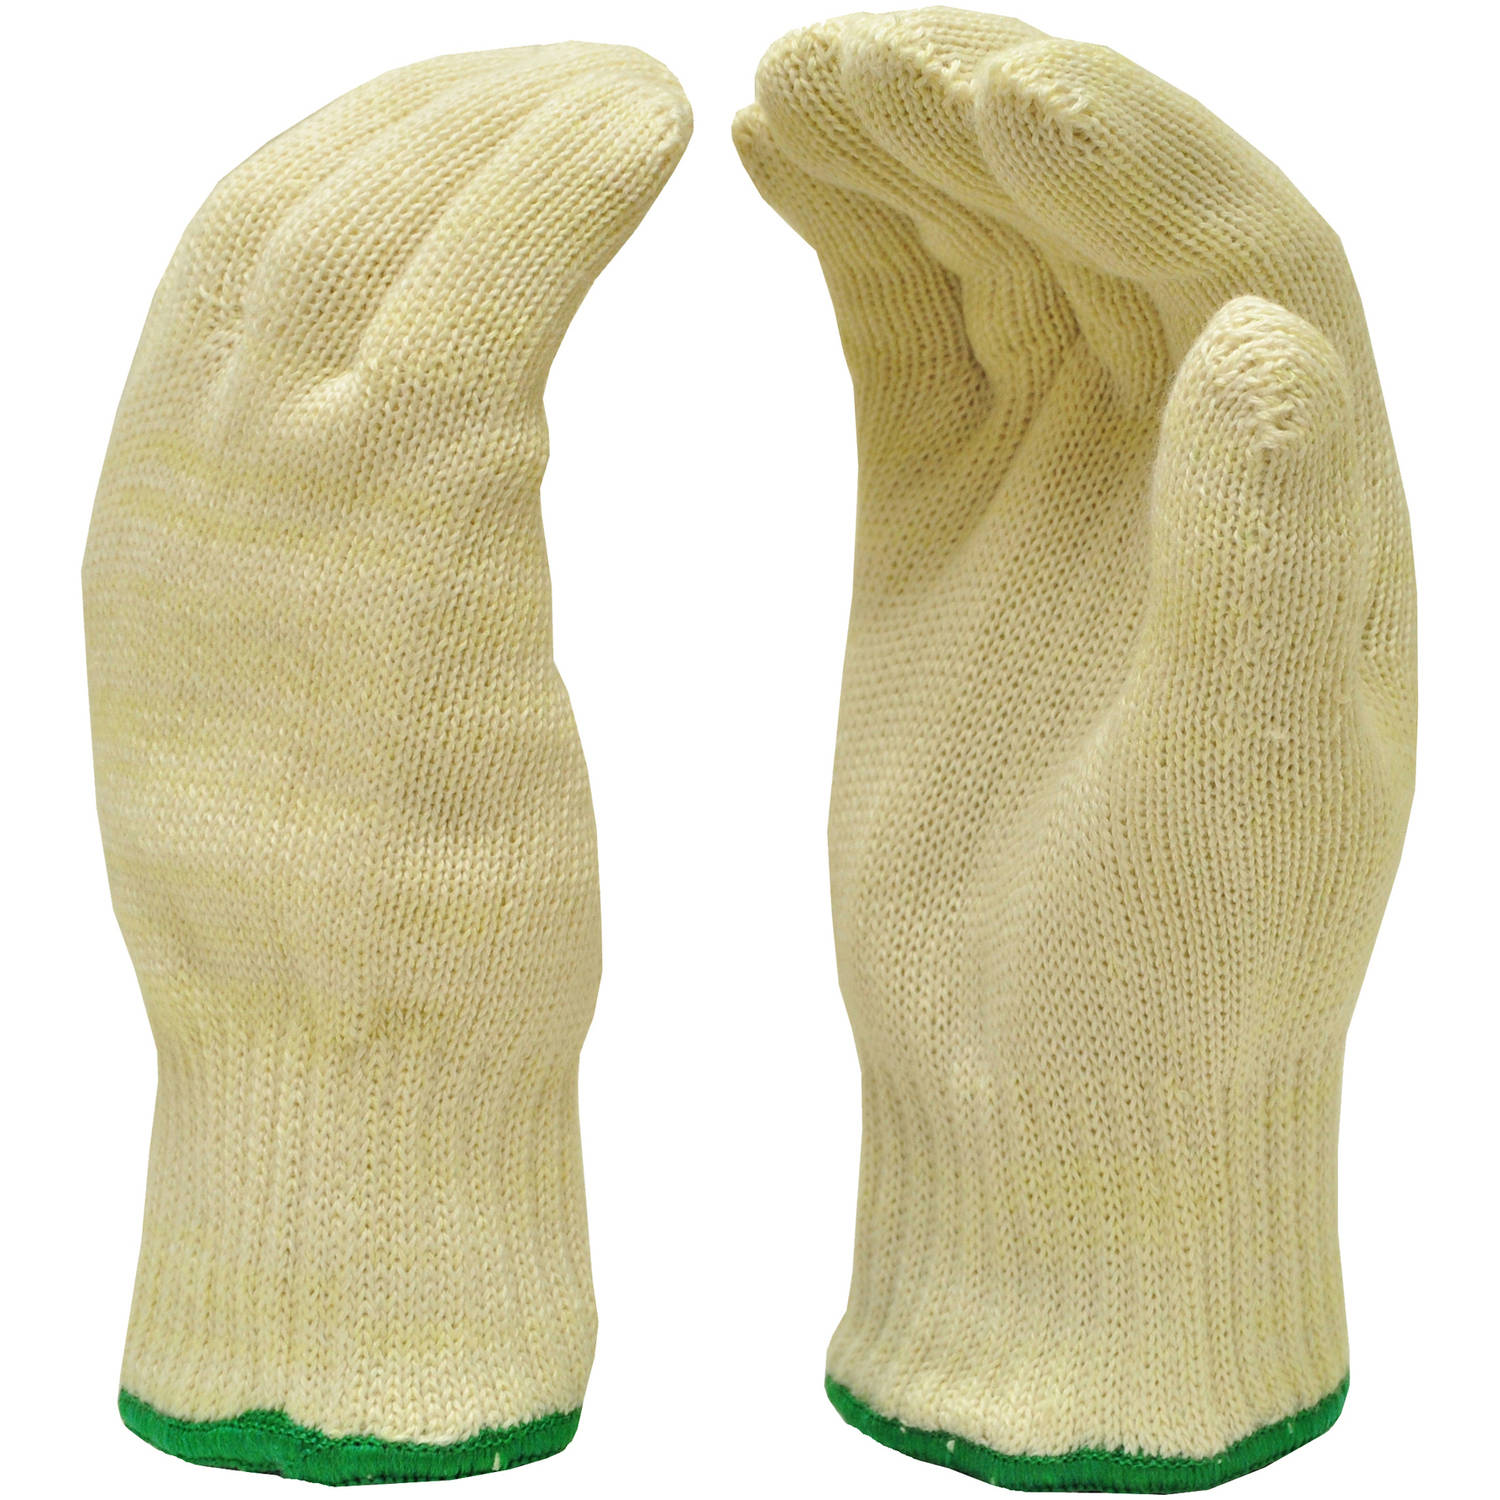 G & F Heat-Resistant Glove, Commercial-Grade, Size Medium